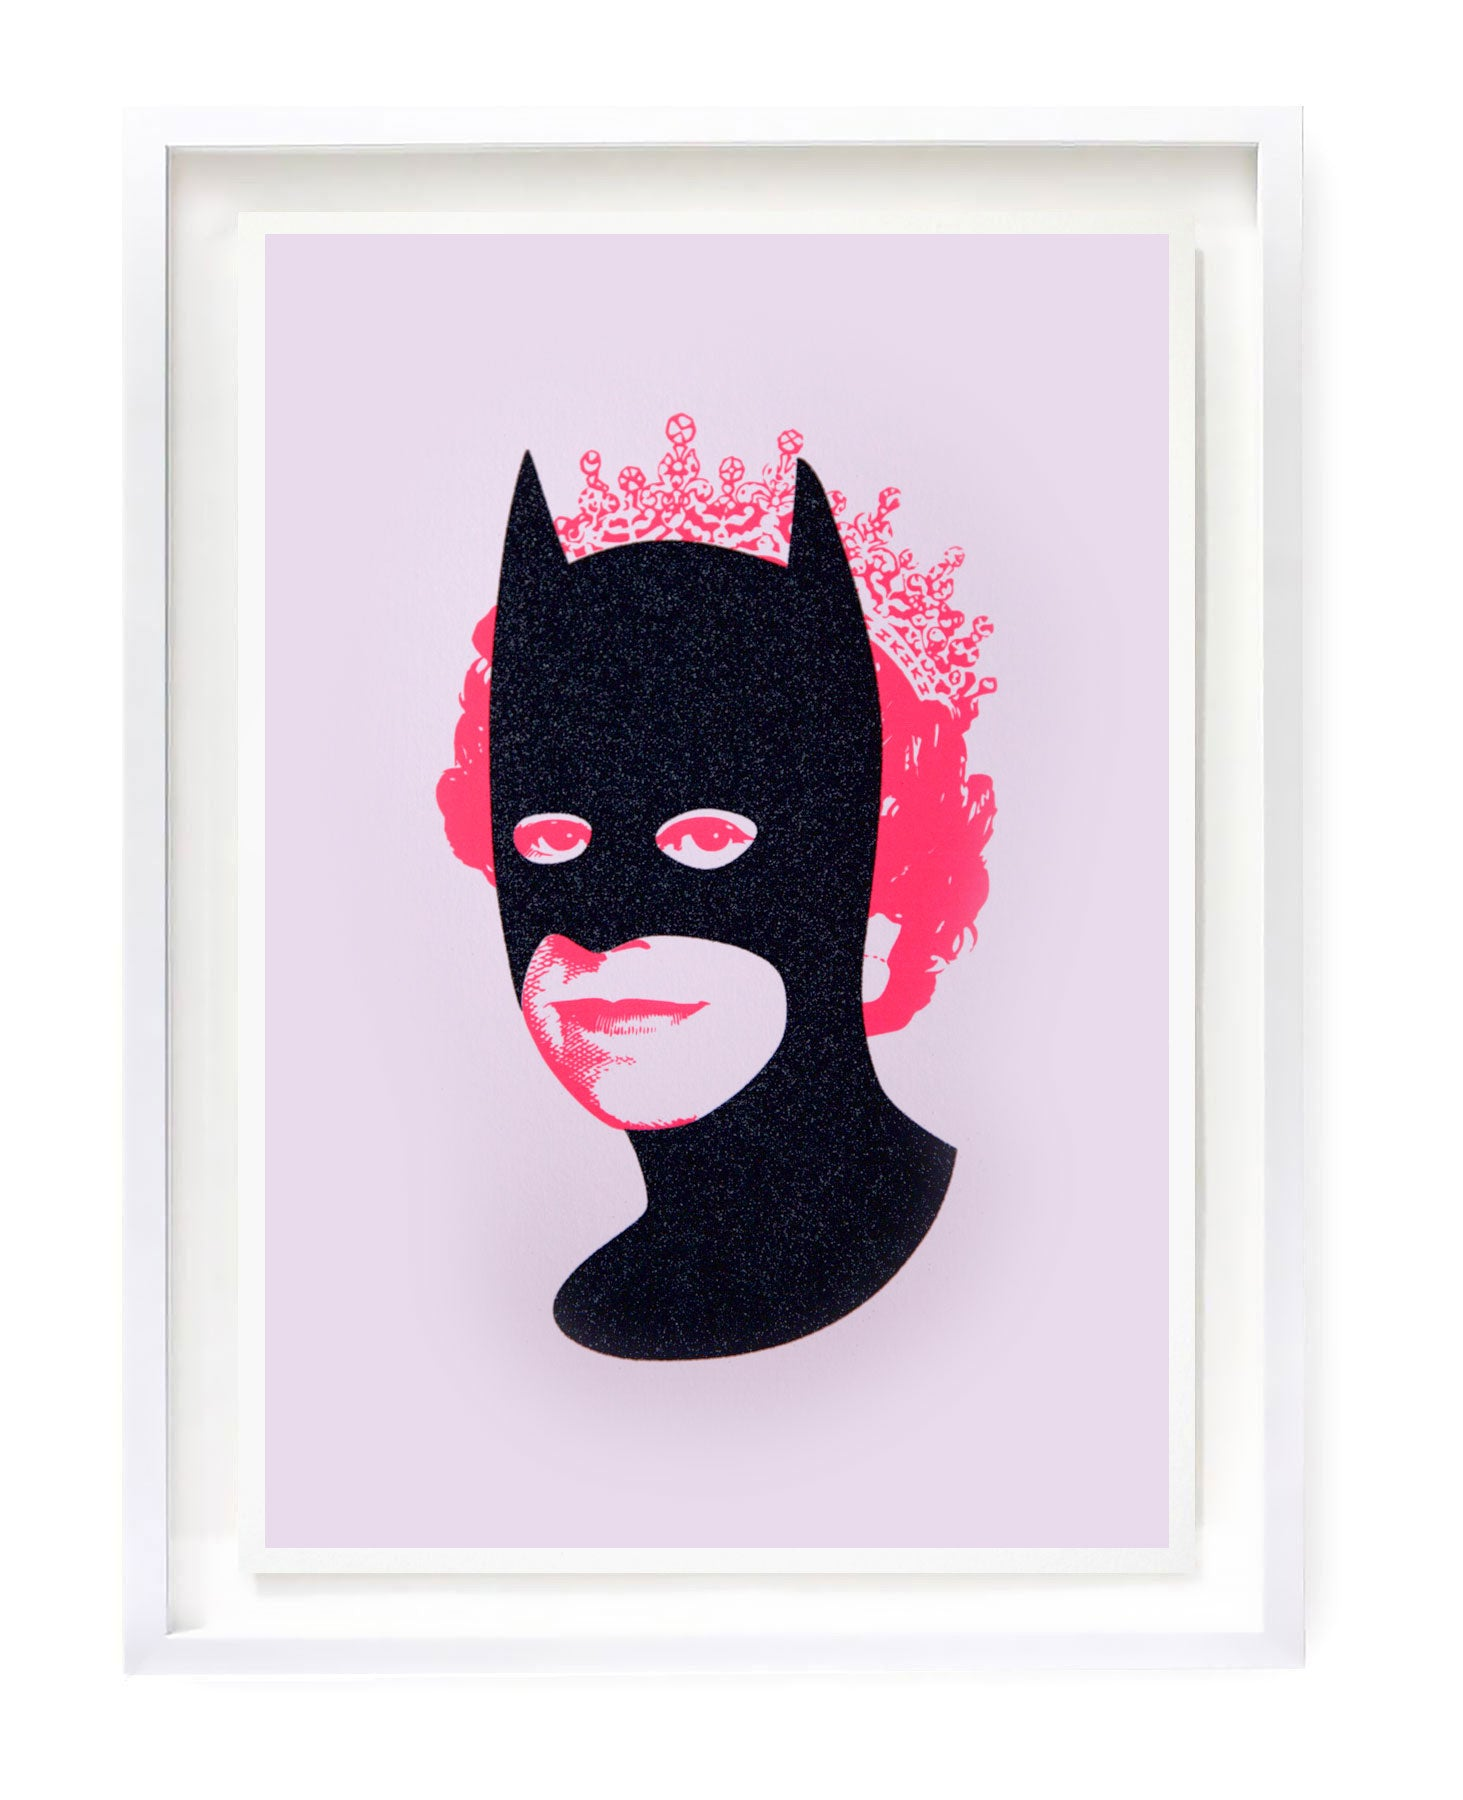 Rich Enough to be Batman - Black Diamond Dust and Pink by Heath Kane